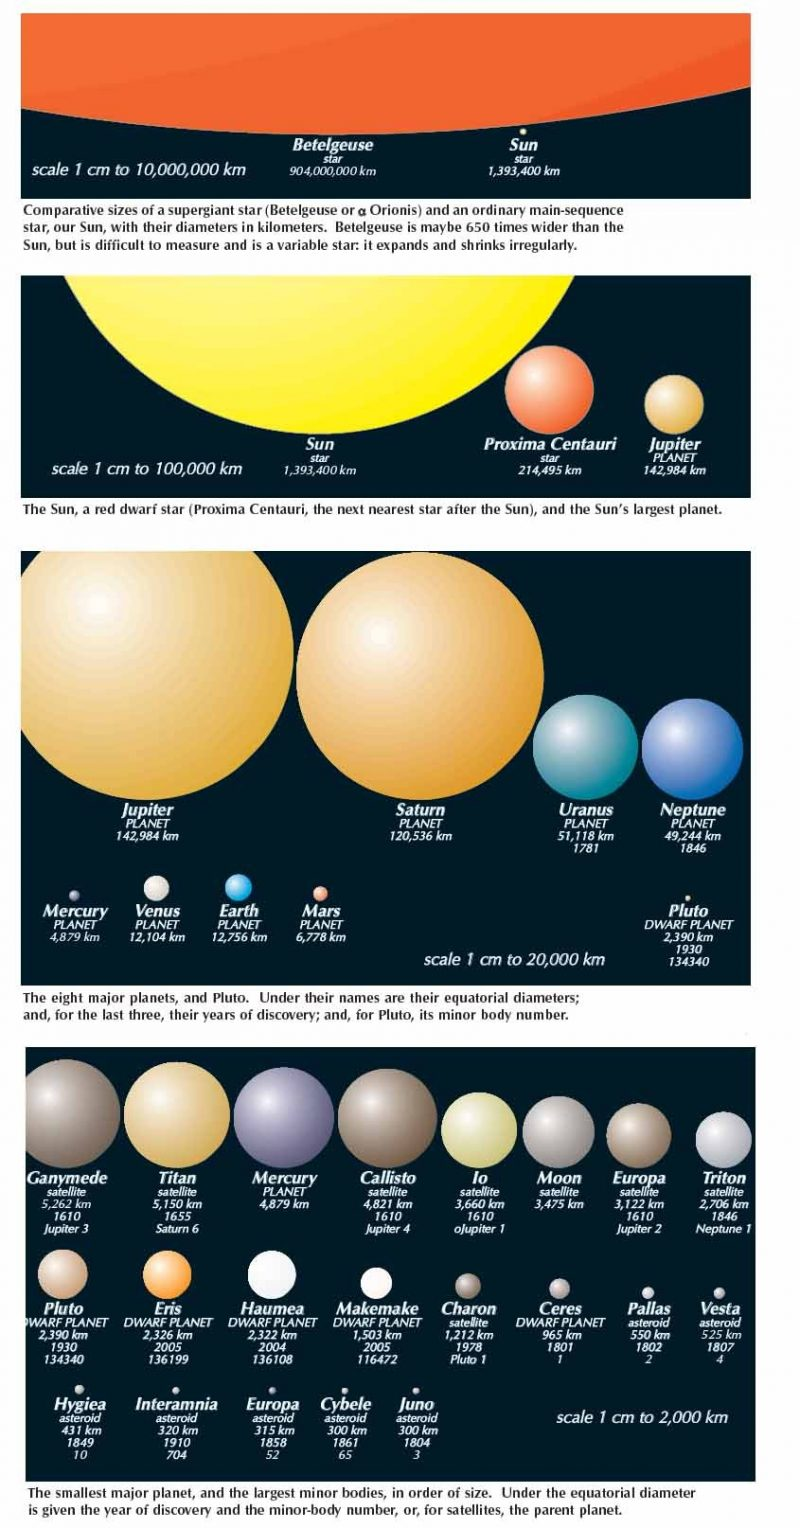 Diagrams with many spheres ranging from 904 million kilometers to 300 kilometers.